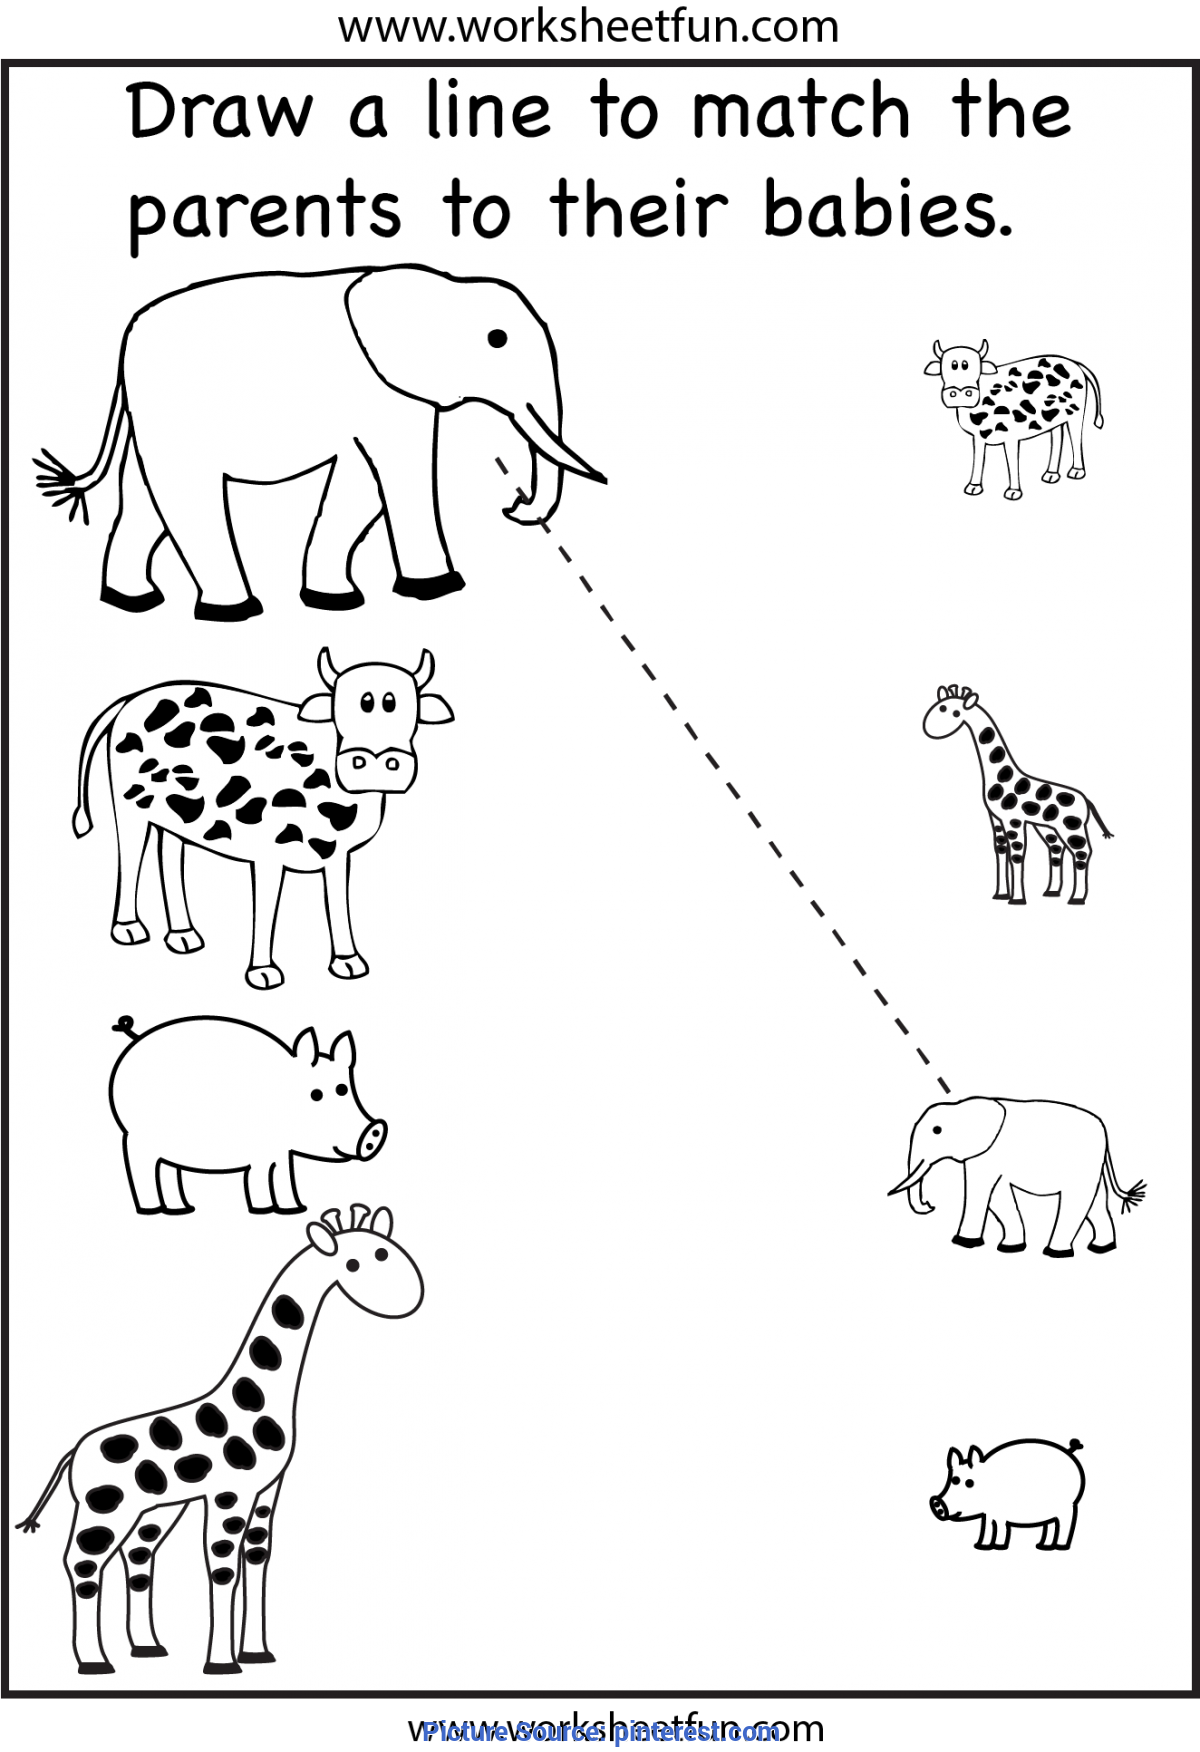 4 Year Old Worksheets Printable | Activity Shelter - Ota Tech